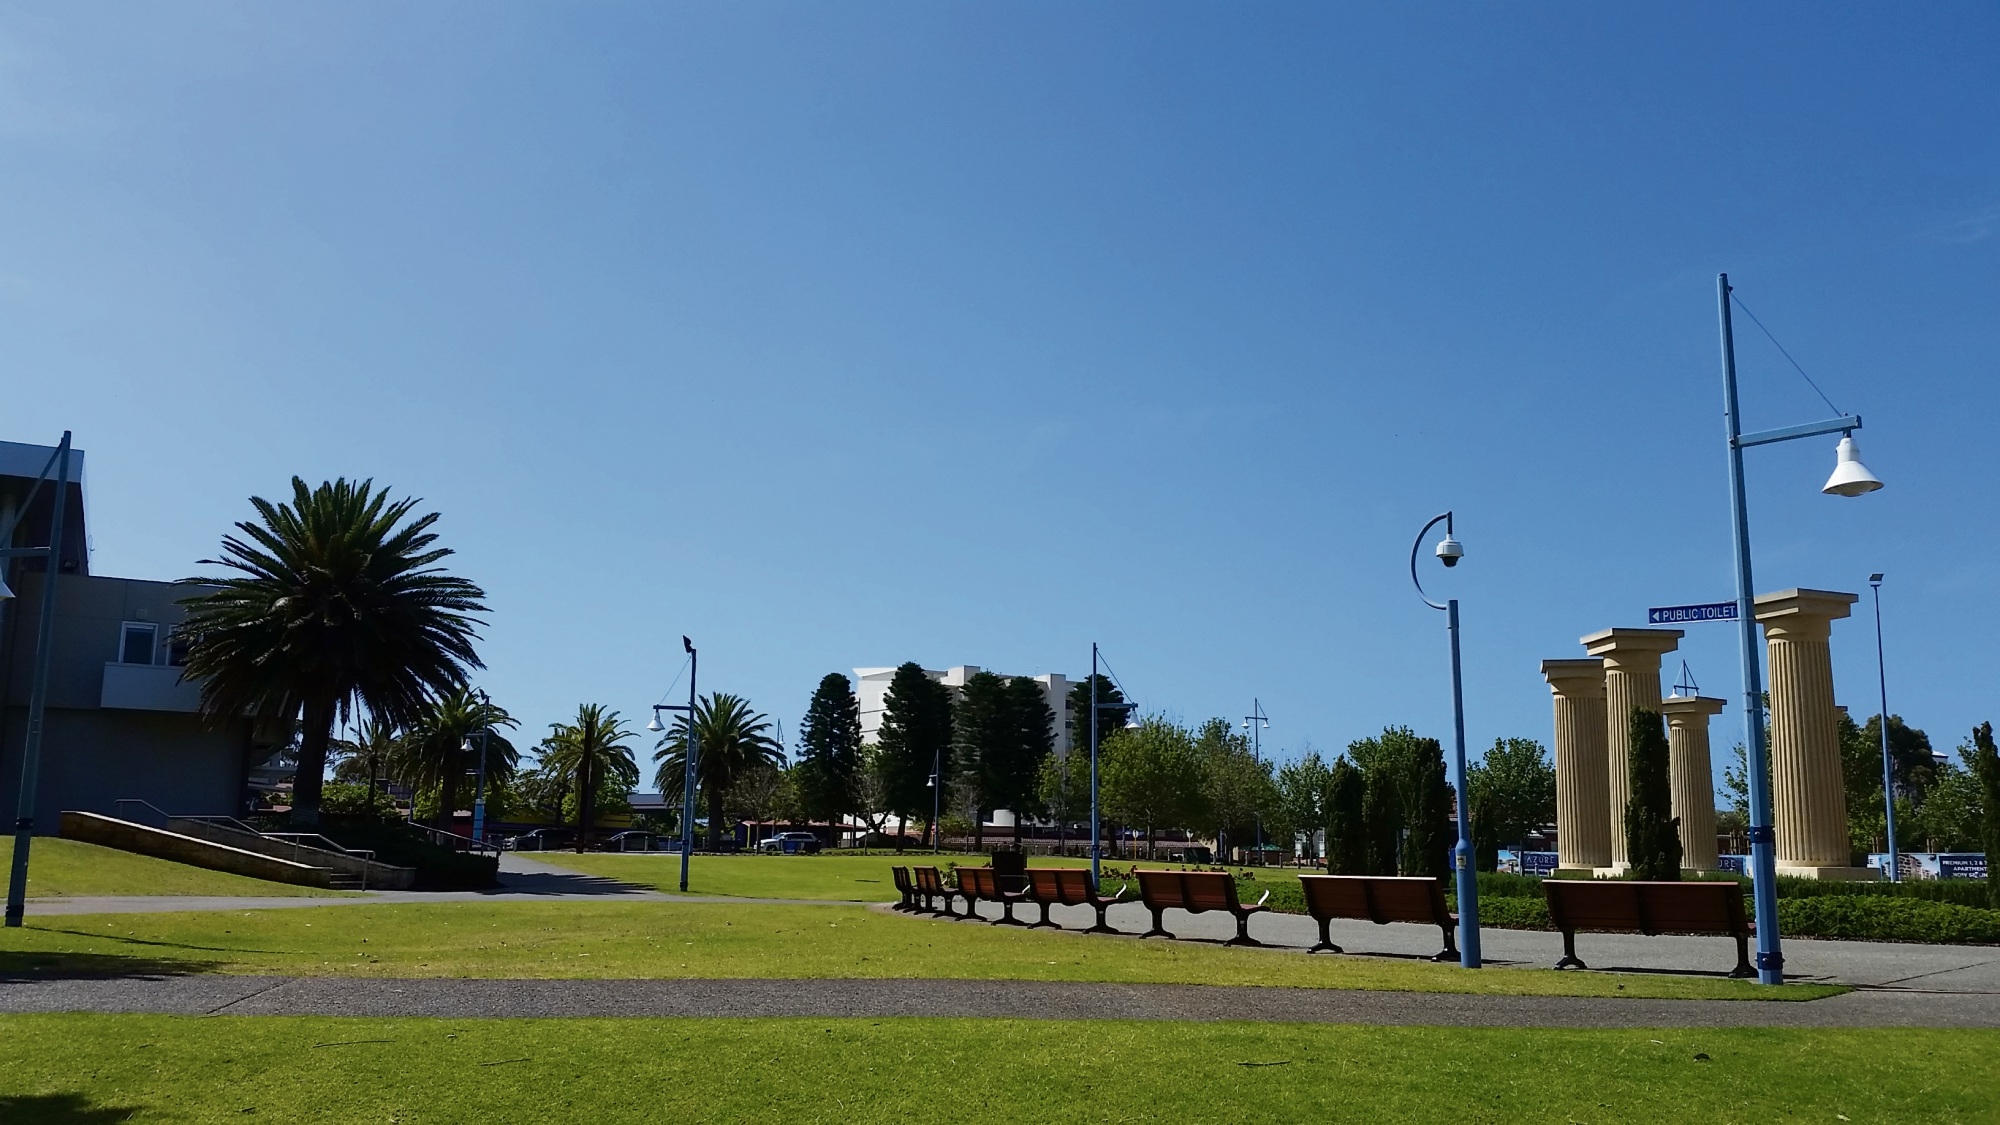 #SnapPerth: Rockingham's Village Green a favourite hidden gem for Cooloongup resident